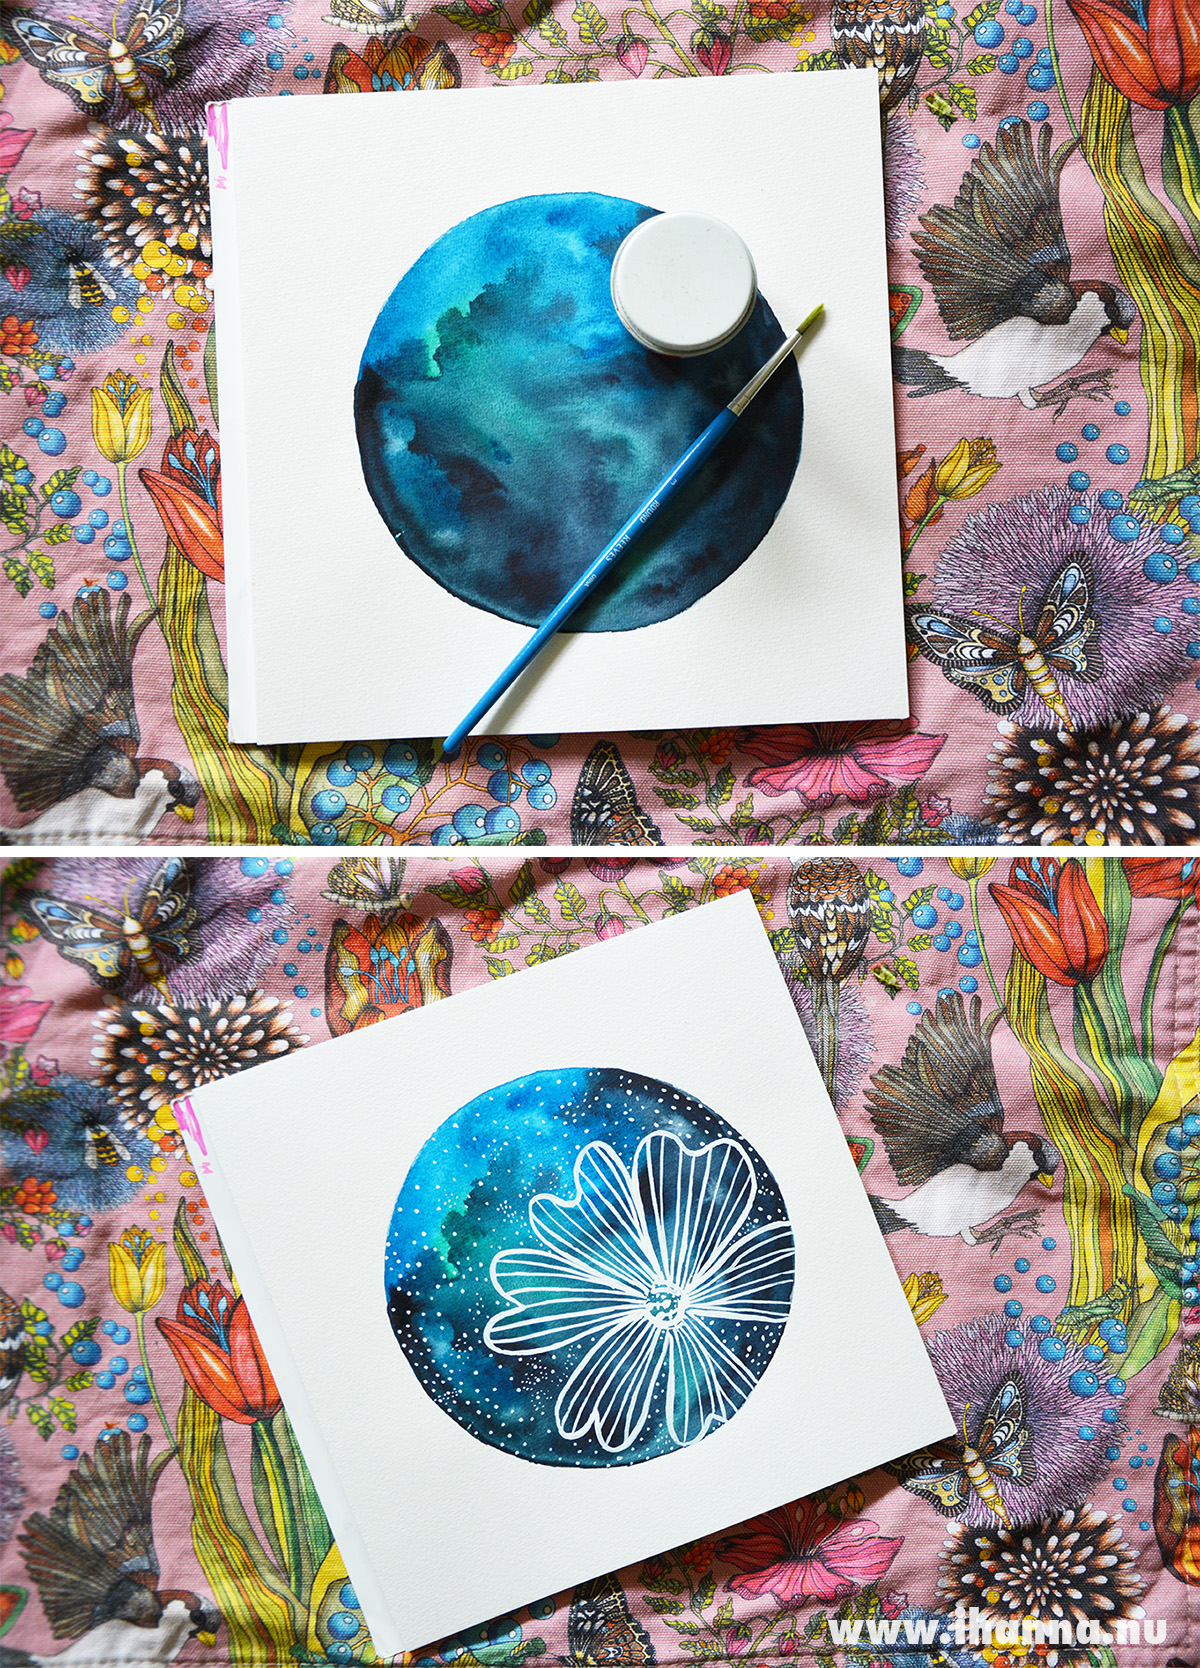 Floral Galaxy Painting by iHanna from a Skillshare class - made with Watercolor and White Ink